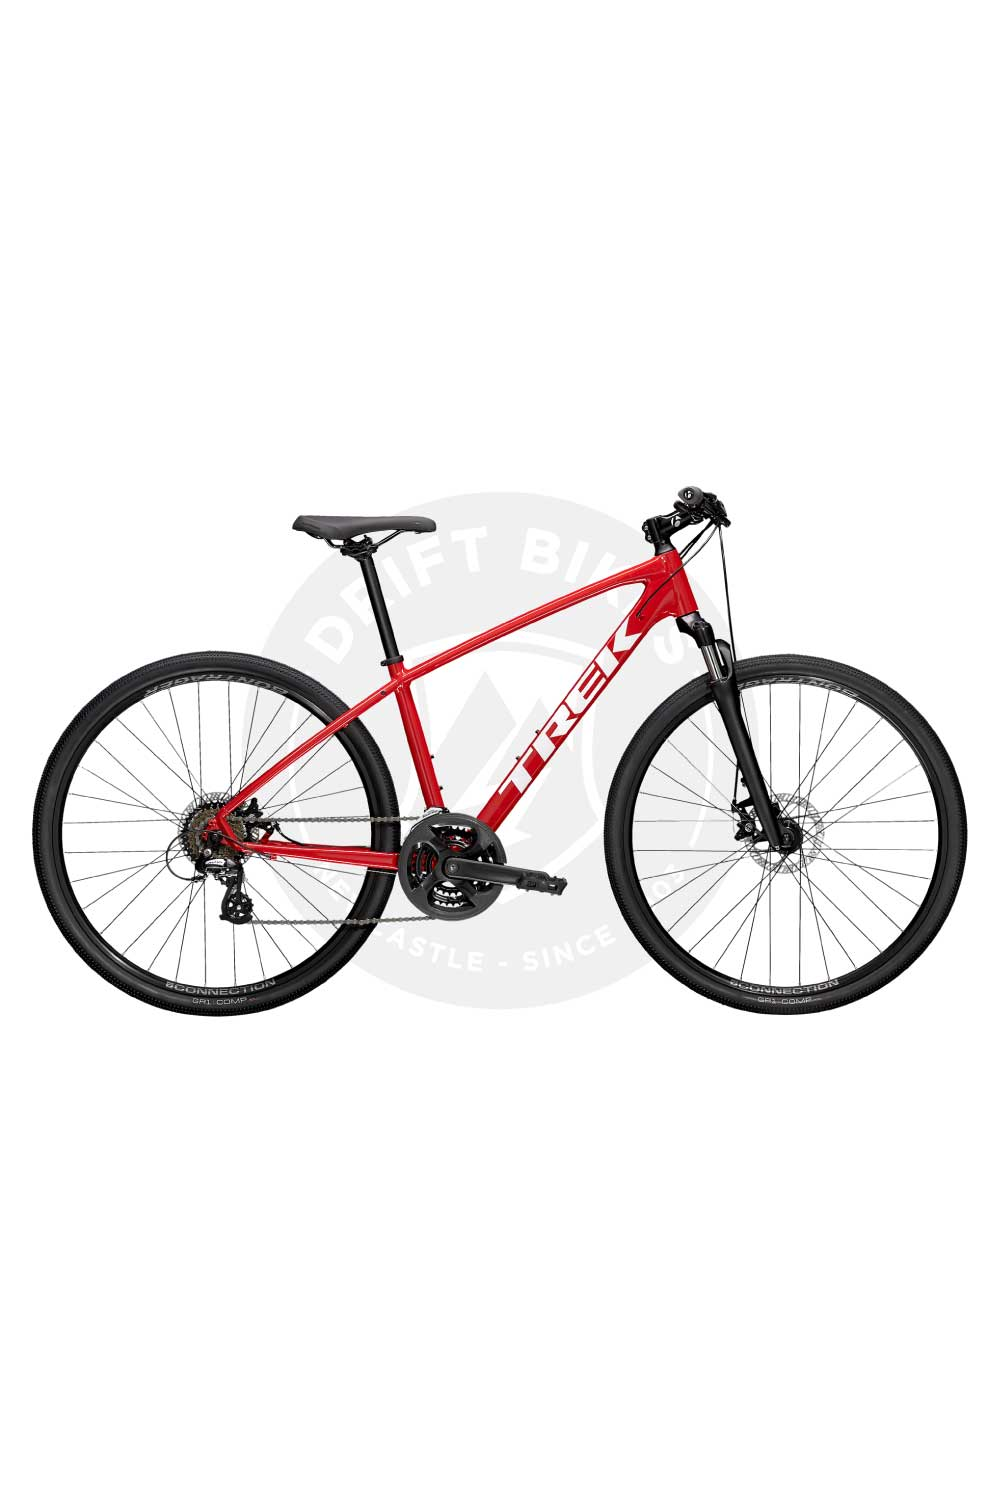 TREK 2021 Dual Sport 1 Fitness Bike